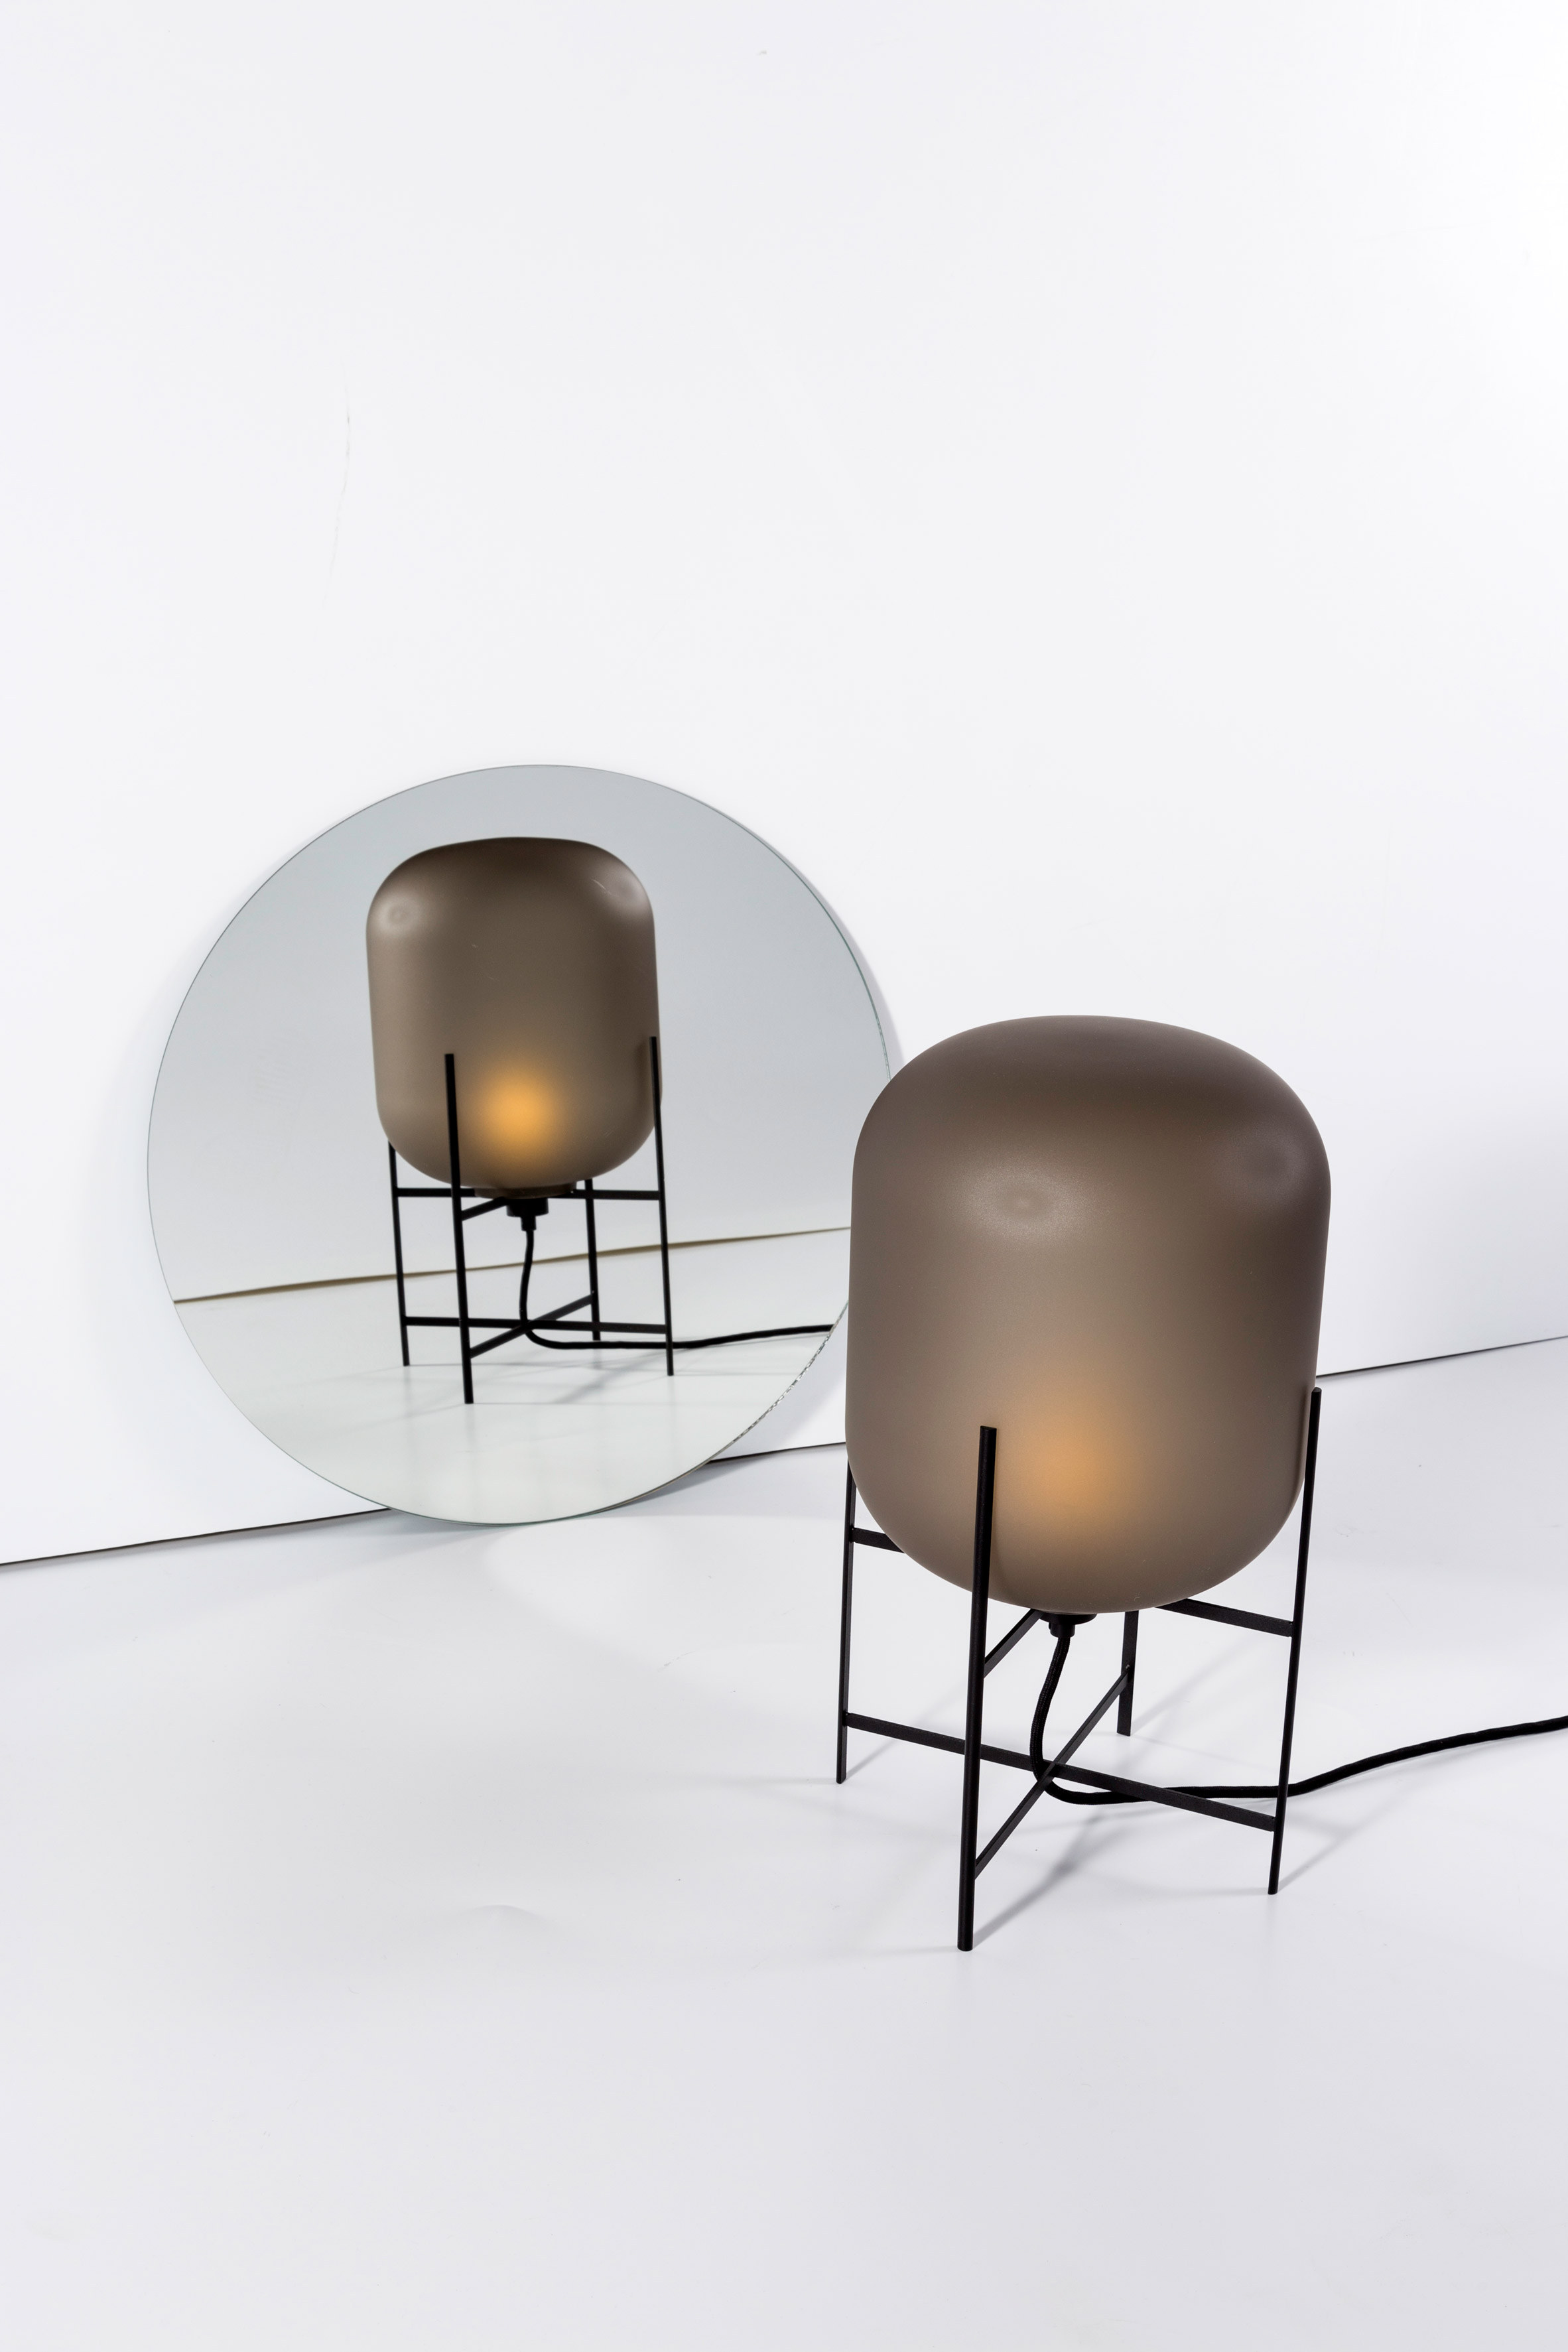 Competition: win an Oda lamp designed by Sebastian Herkner for Pulpo